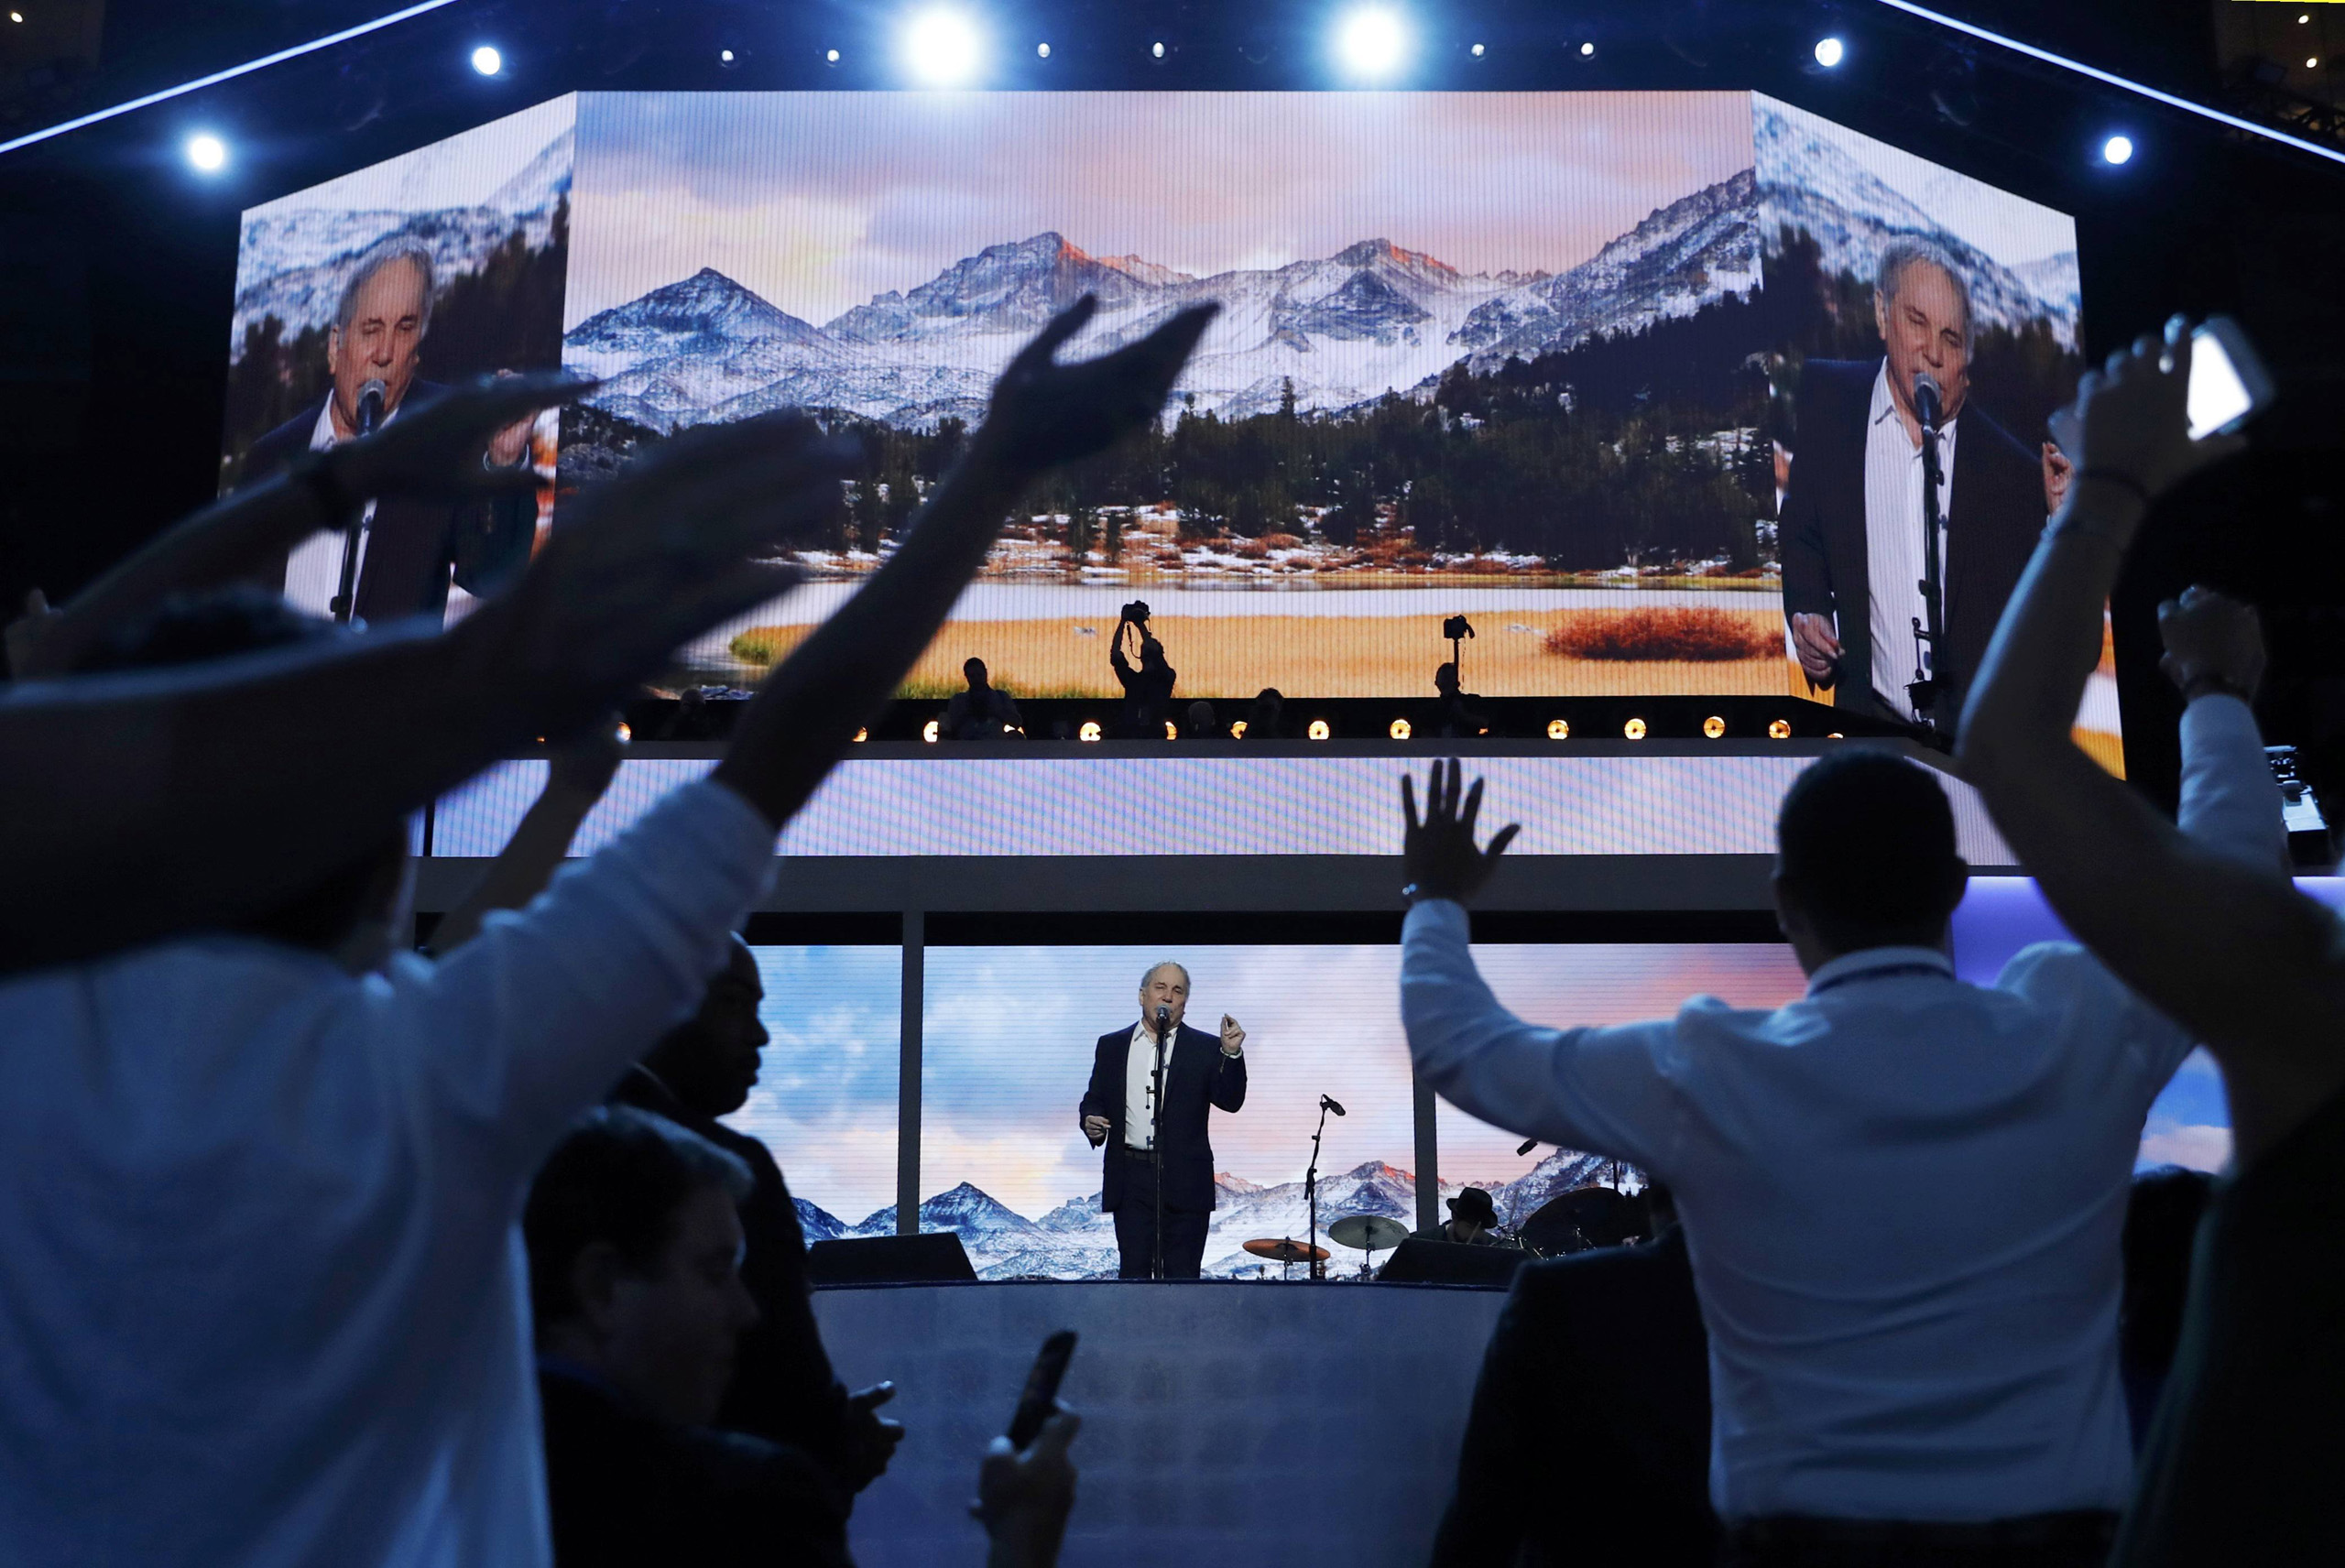 Recording artist Paul Simon performs at the Democratic National Convention in Philadelphia on July 25, 2016.